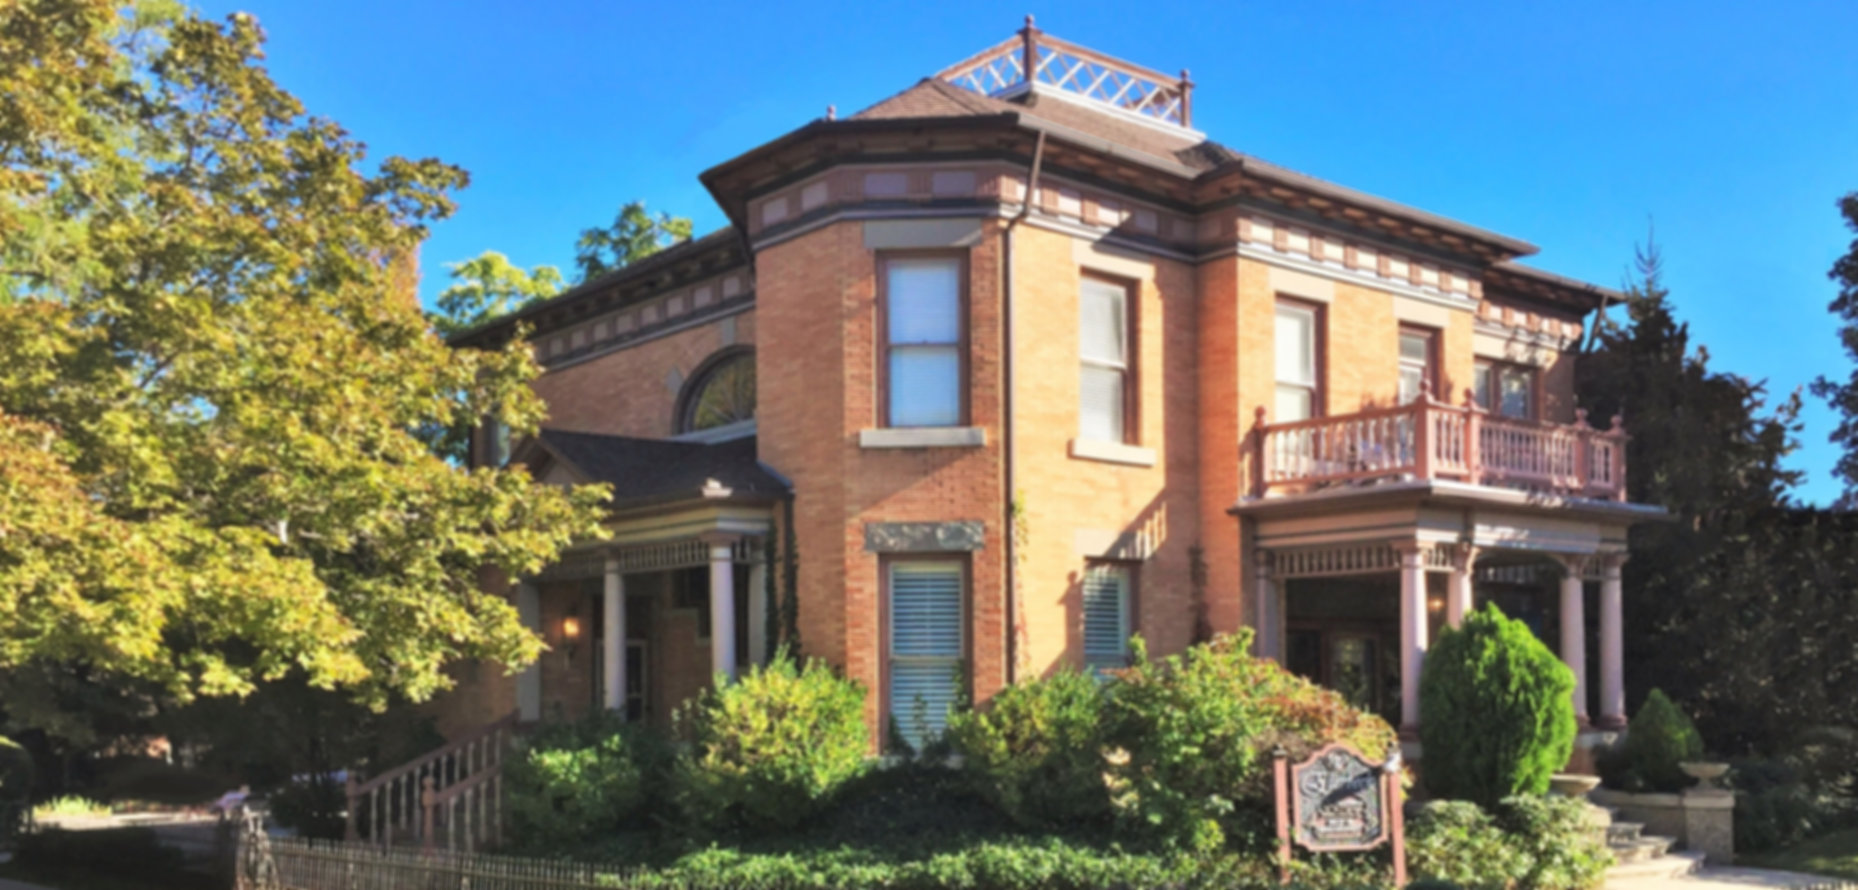 Visit the historic Ellerbeck Bed and Breakfast Salt Lake City